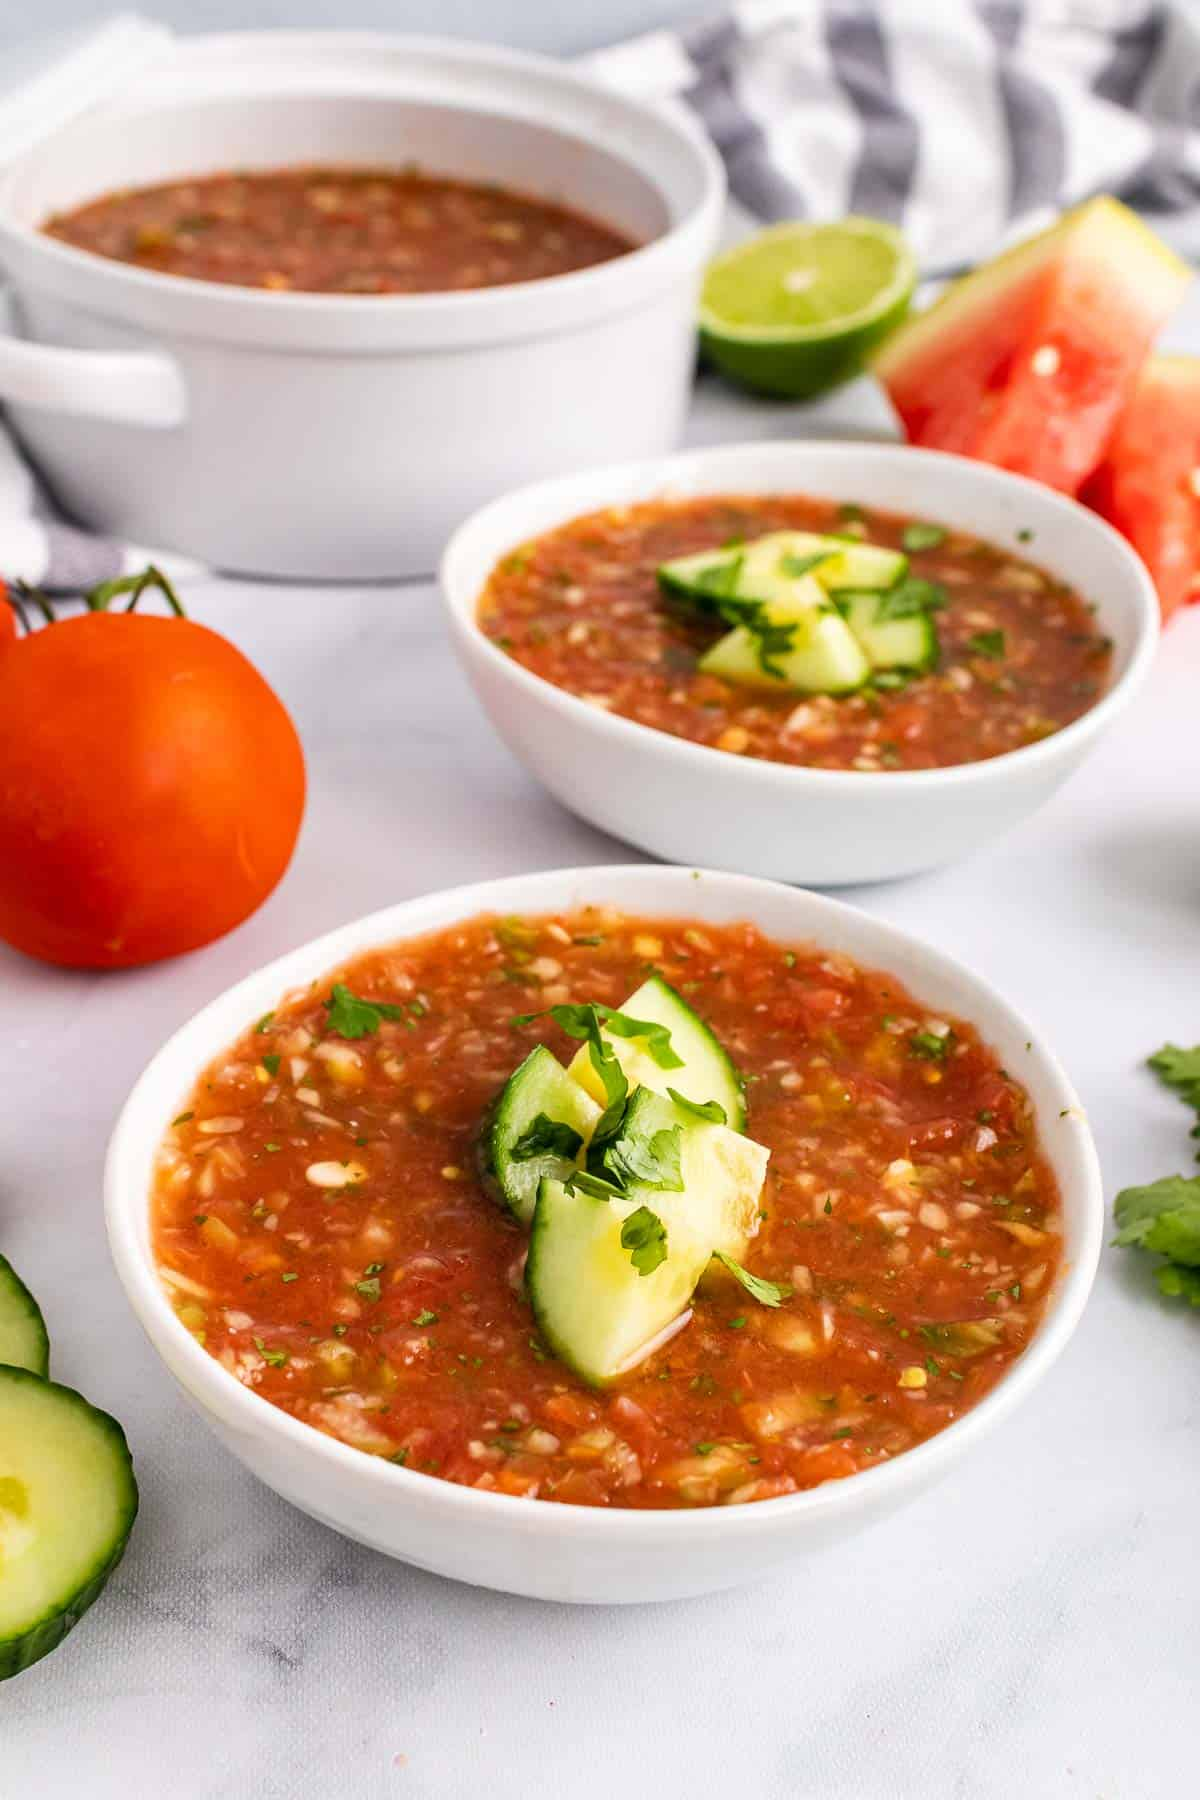 Two bowls of Grilled Watermelon Gazpacho on table